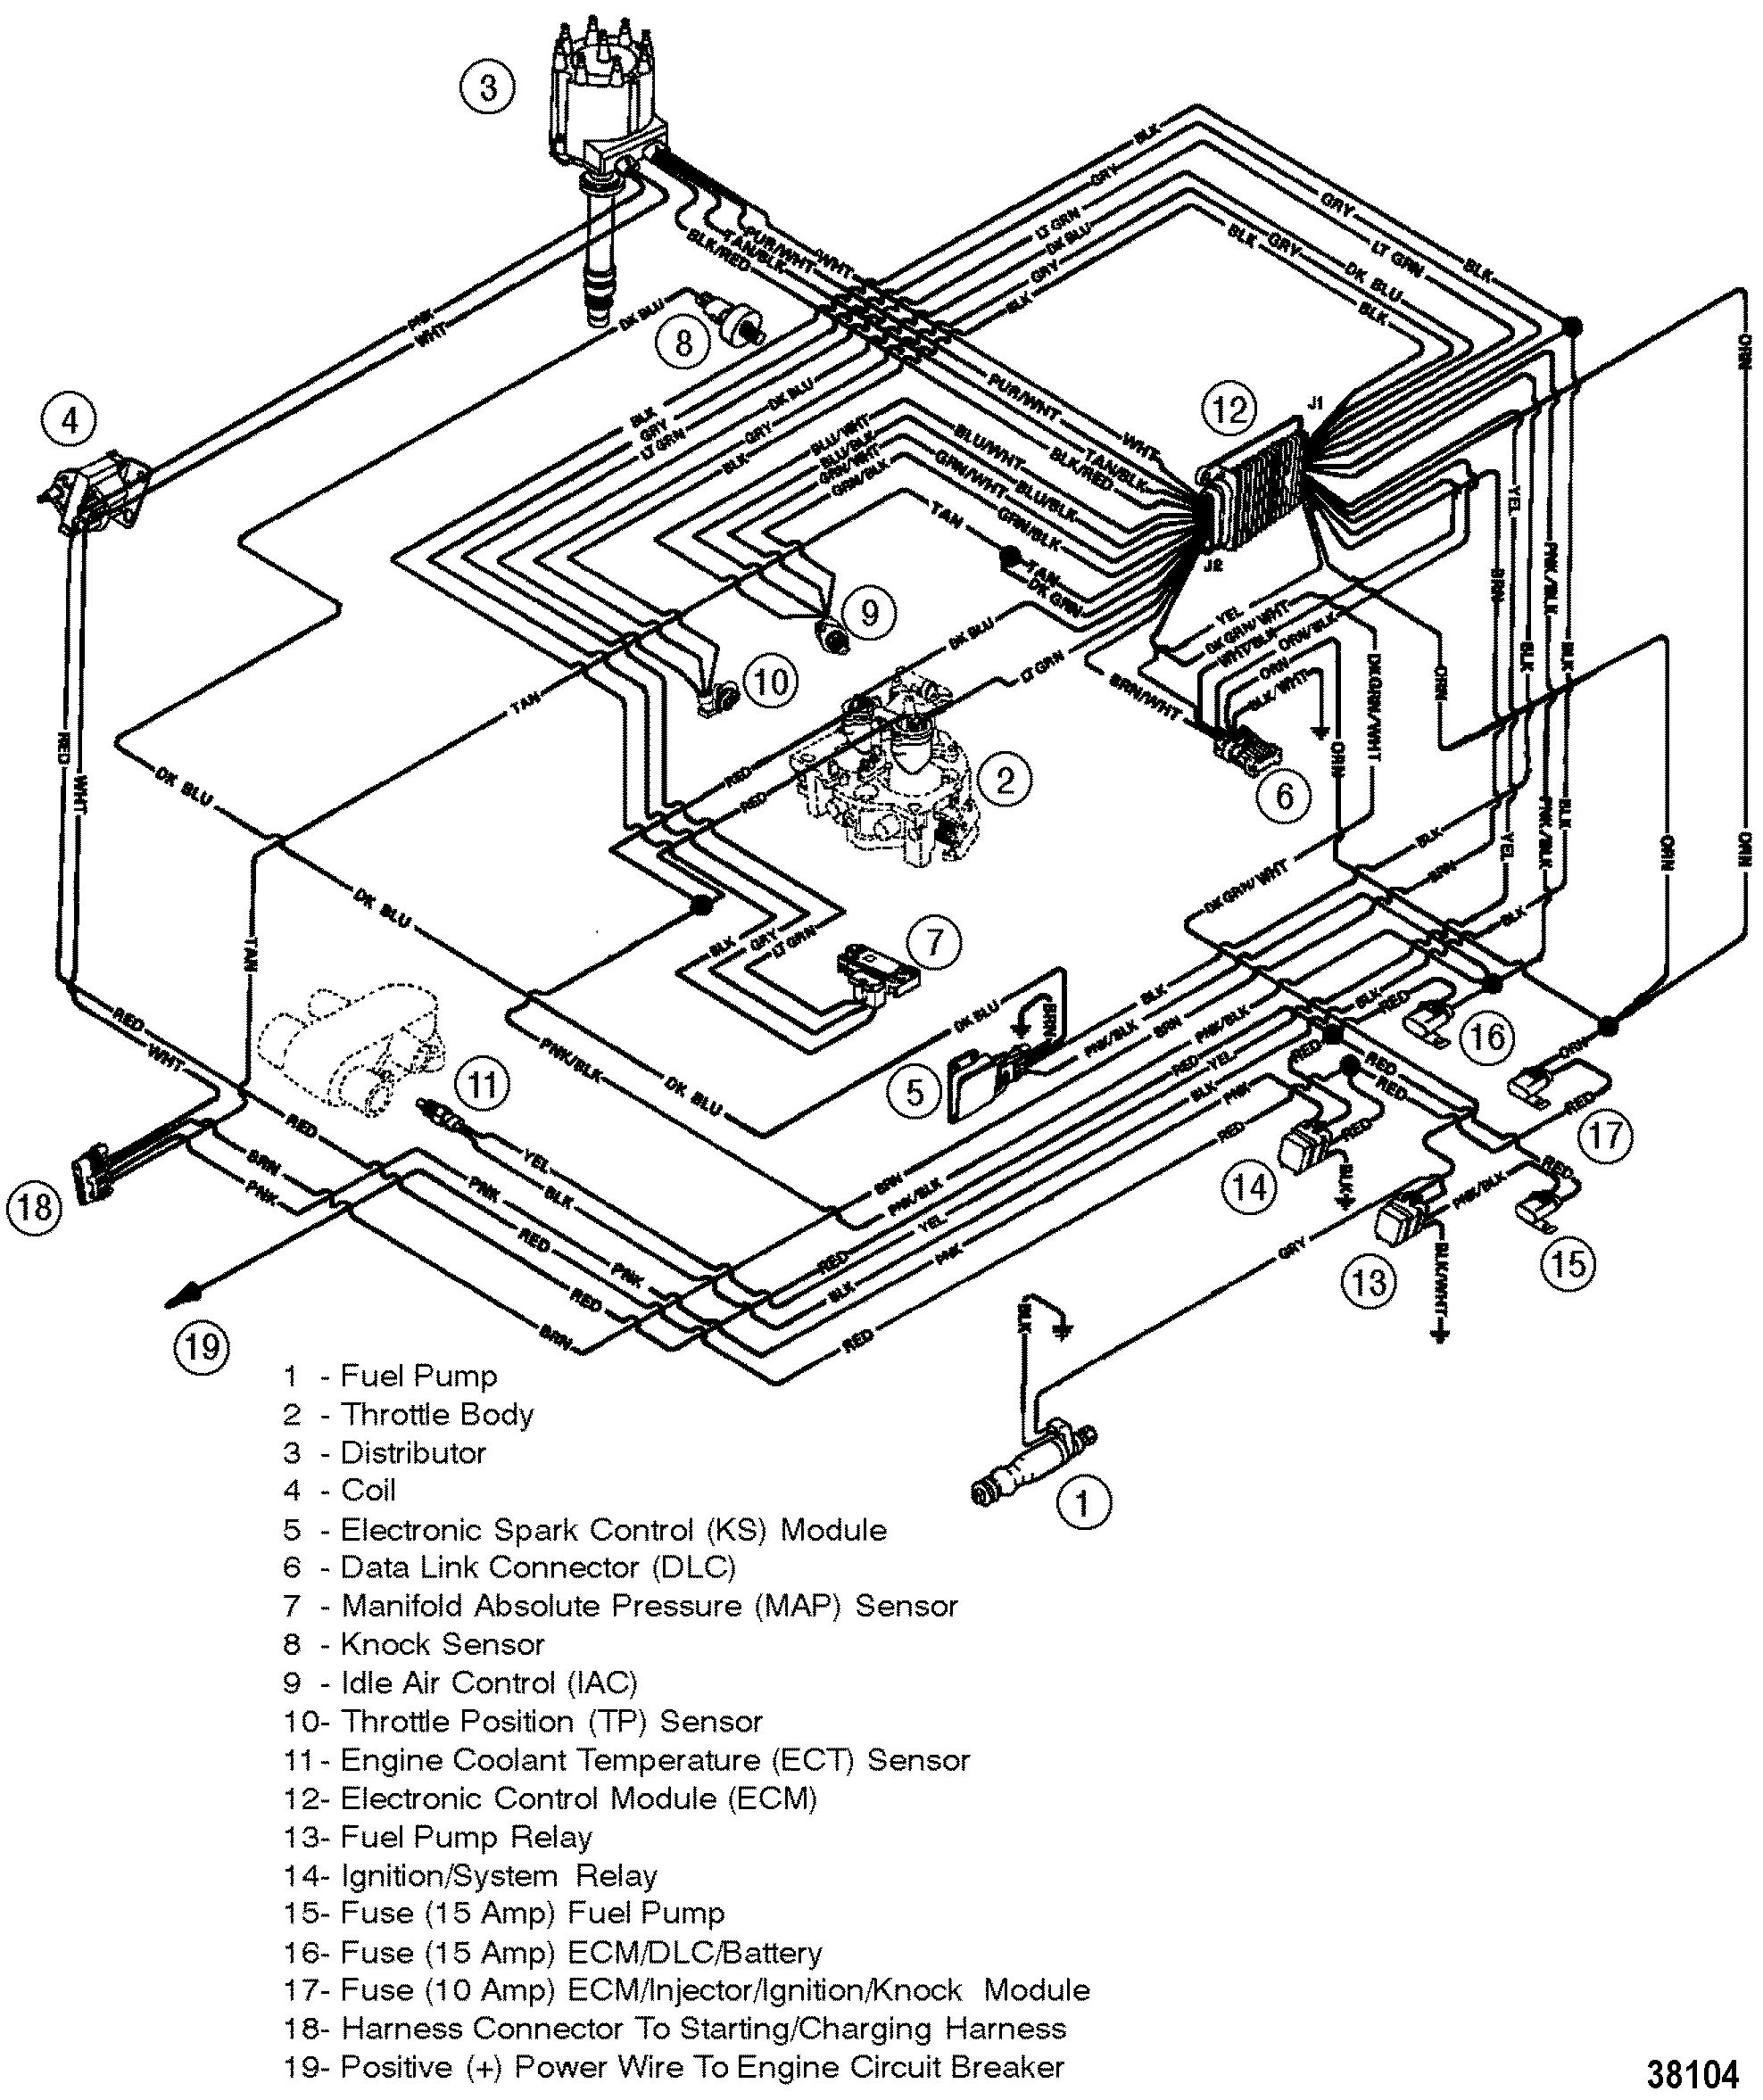 CD07243 Cp Performance Wiring Harness And Electrical Ponents | Wiring  LibraryWiring Library